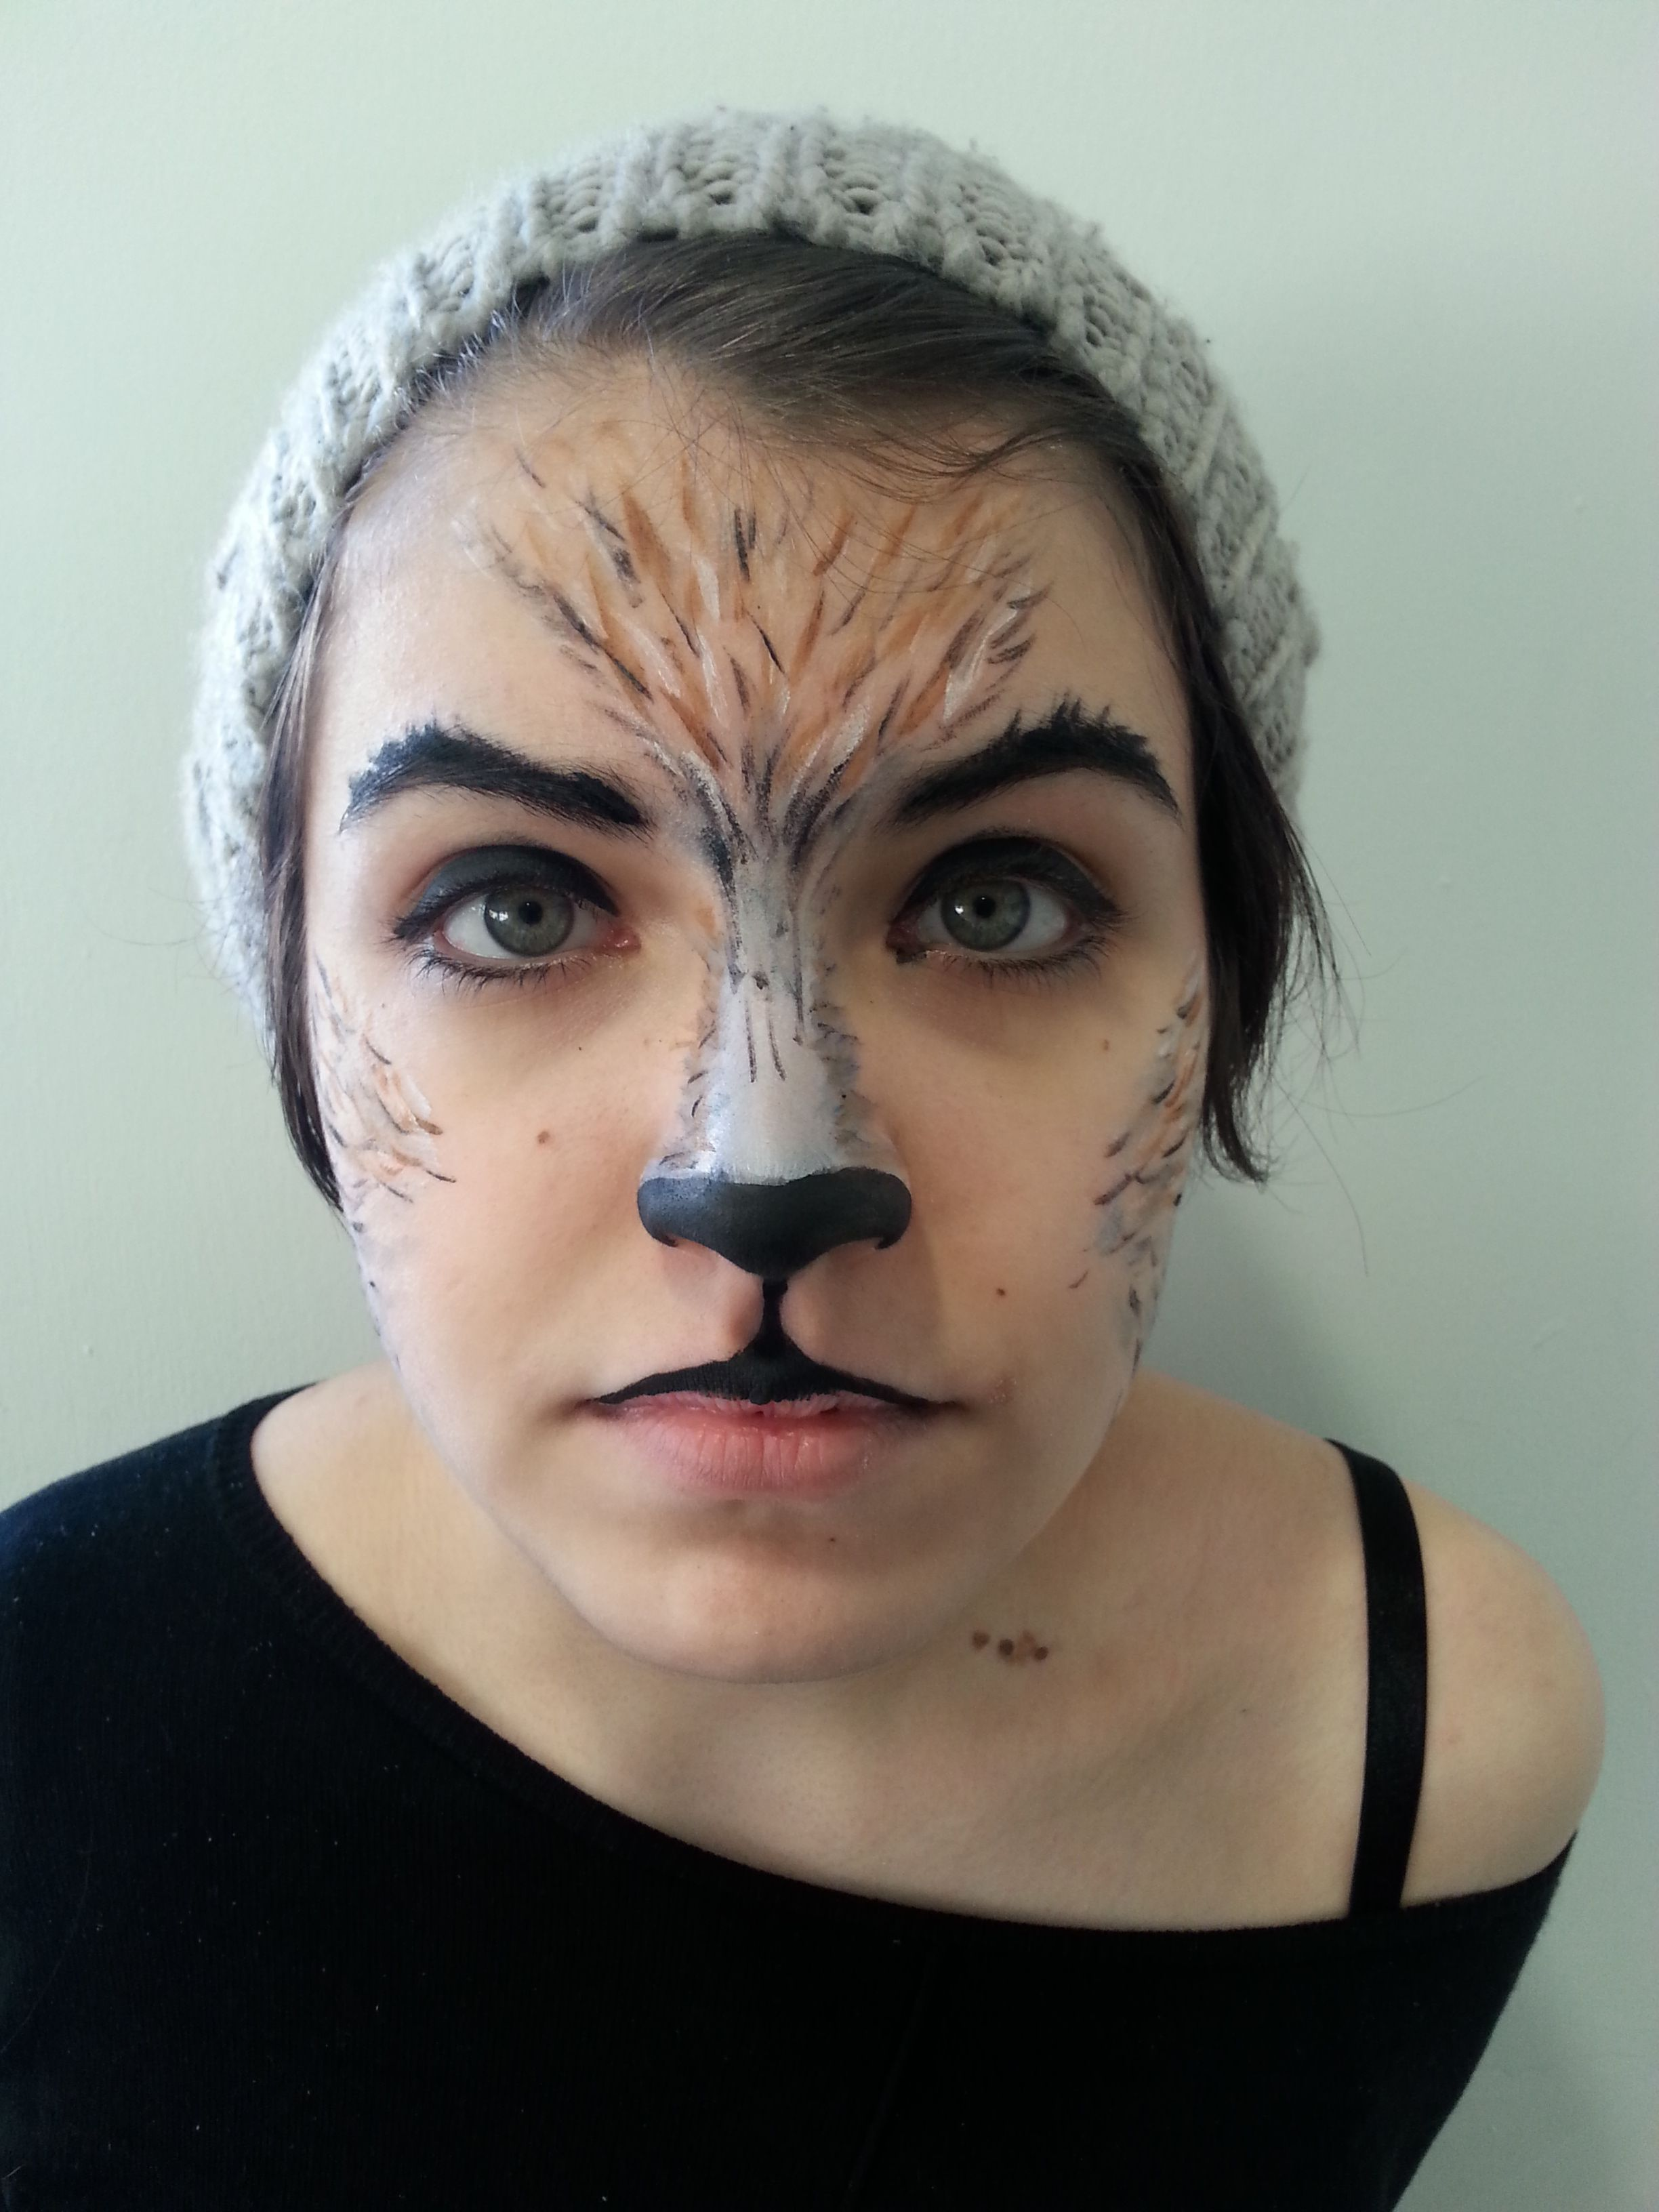 MUA Big Bad Wolf Model- Rhi Bunce Makeup By Evie Stoughton